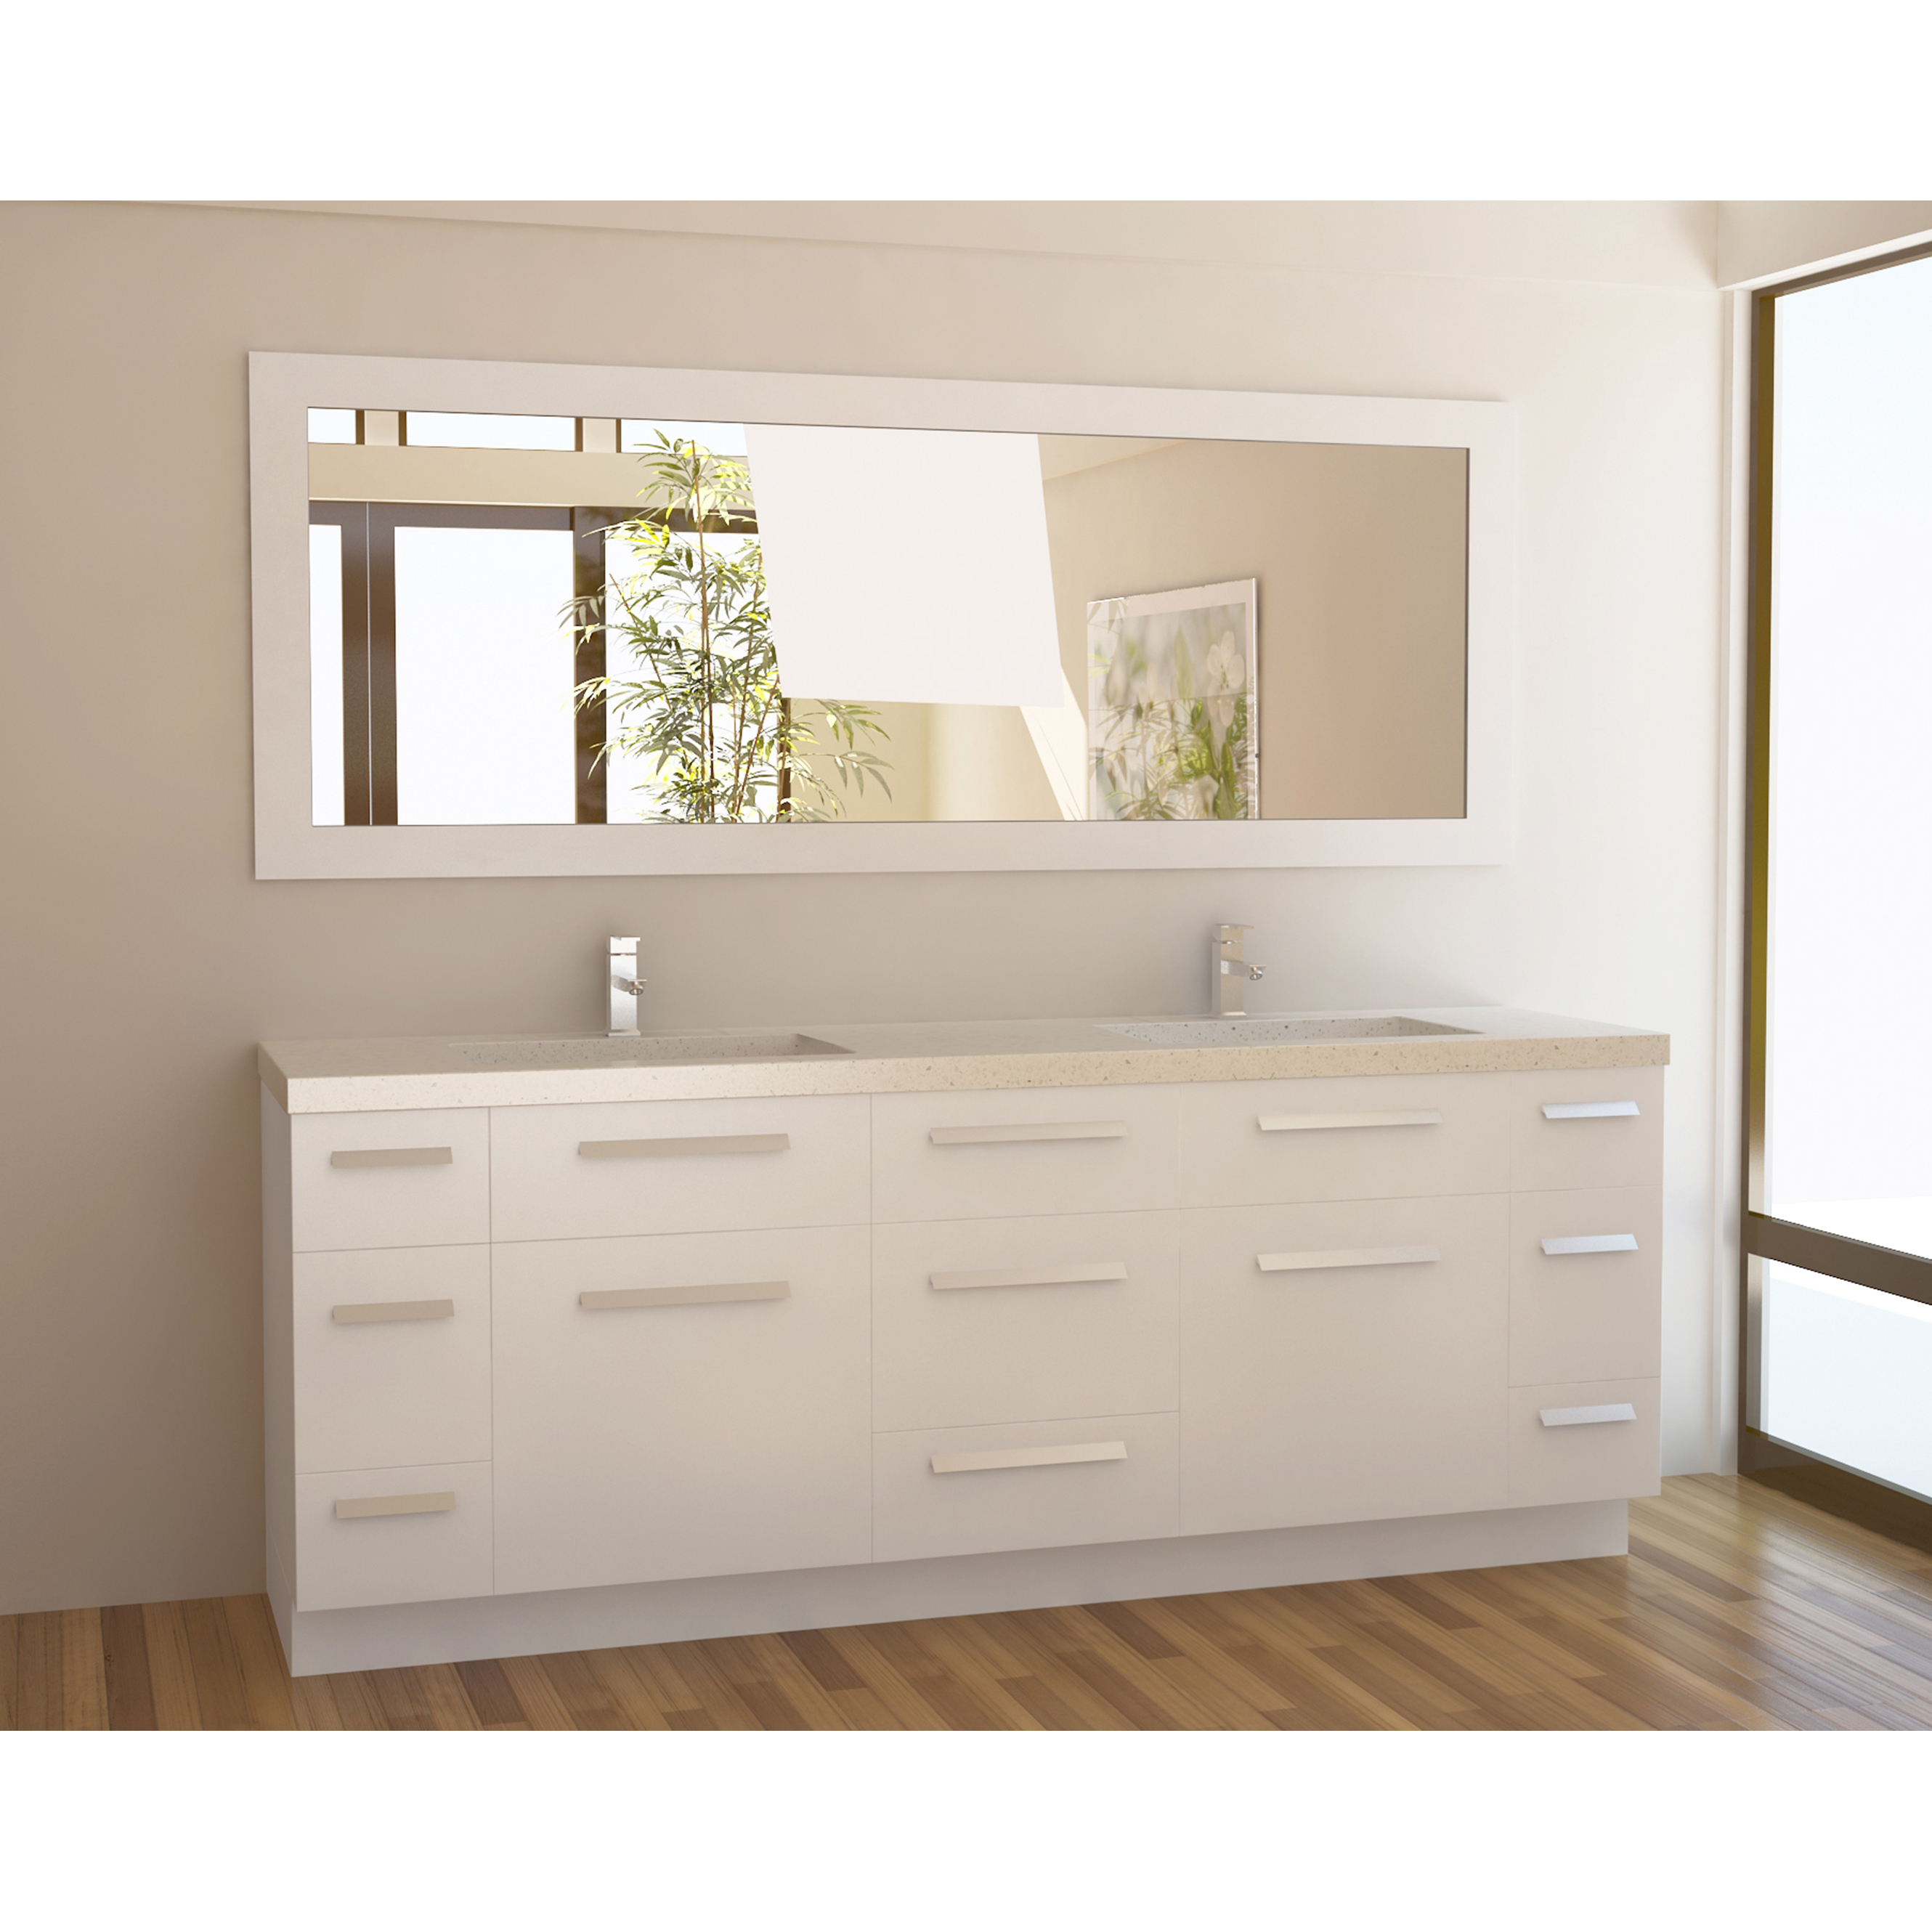 84 inch bathroom vanity the variants homesfeed for Bathroom double vanity designs